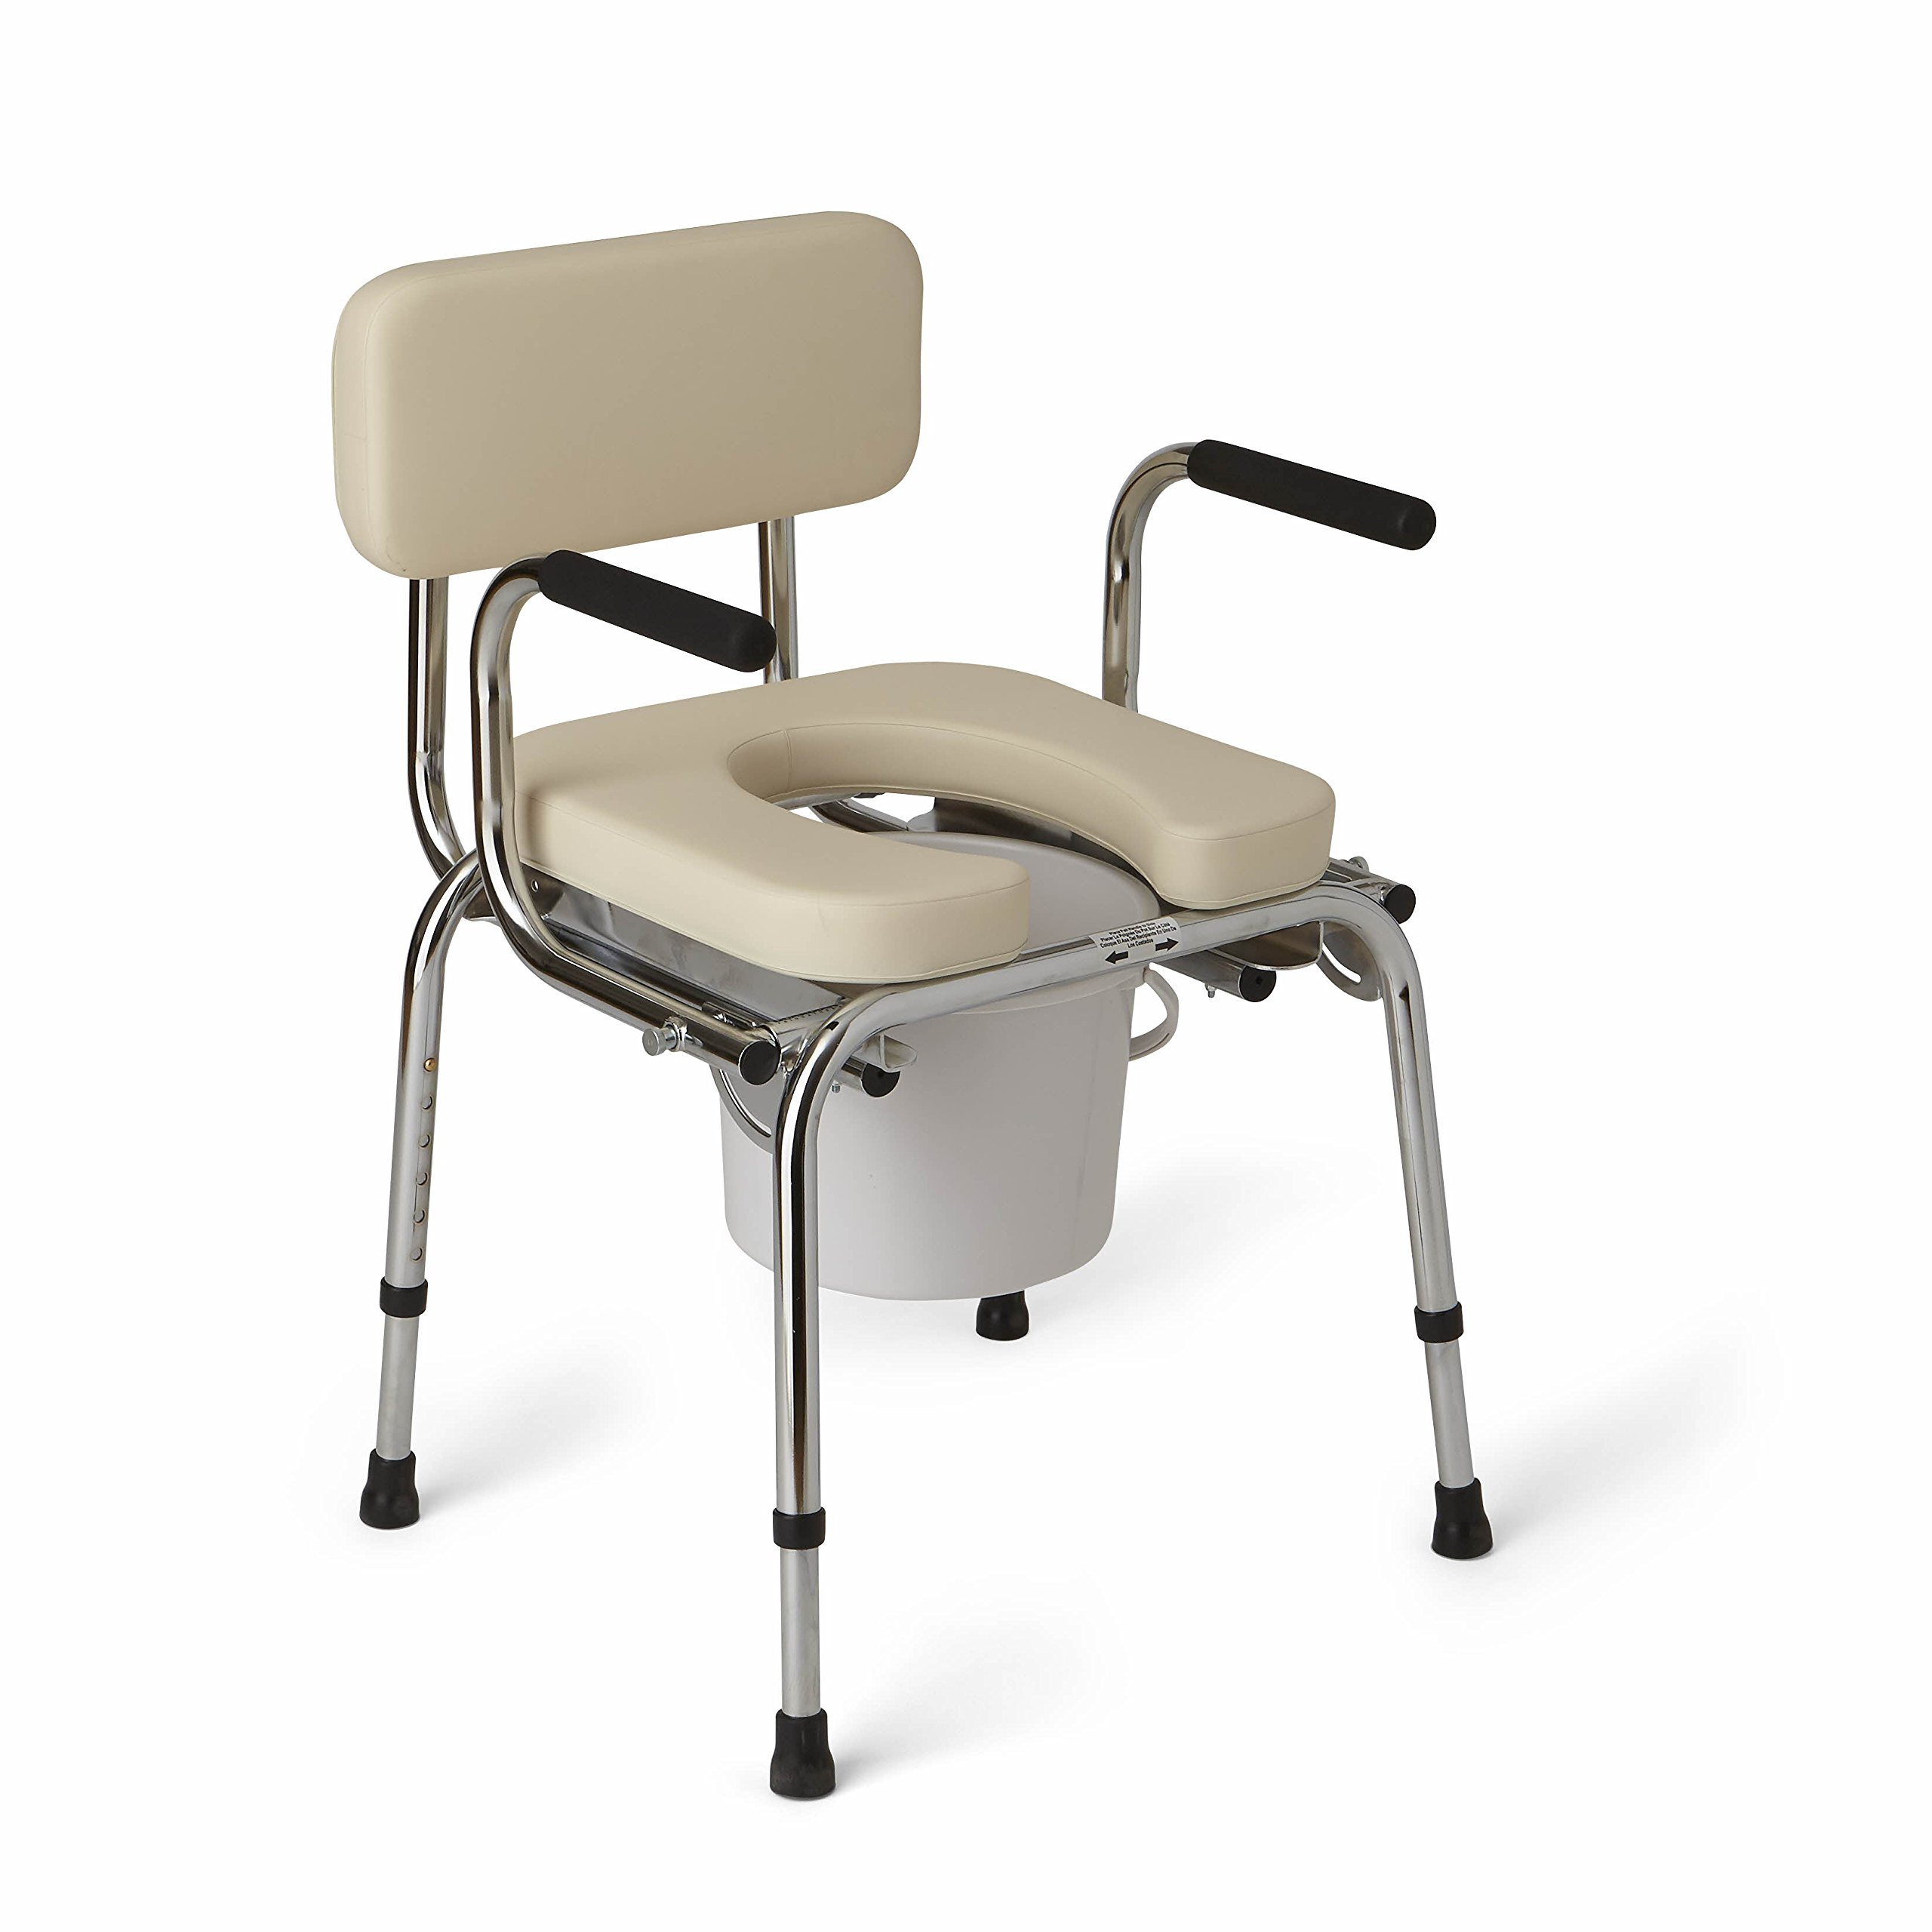 Medline Heavy Duty Padded Drop-Arm Commode by Medline